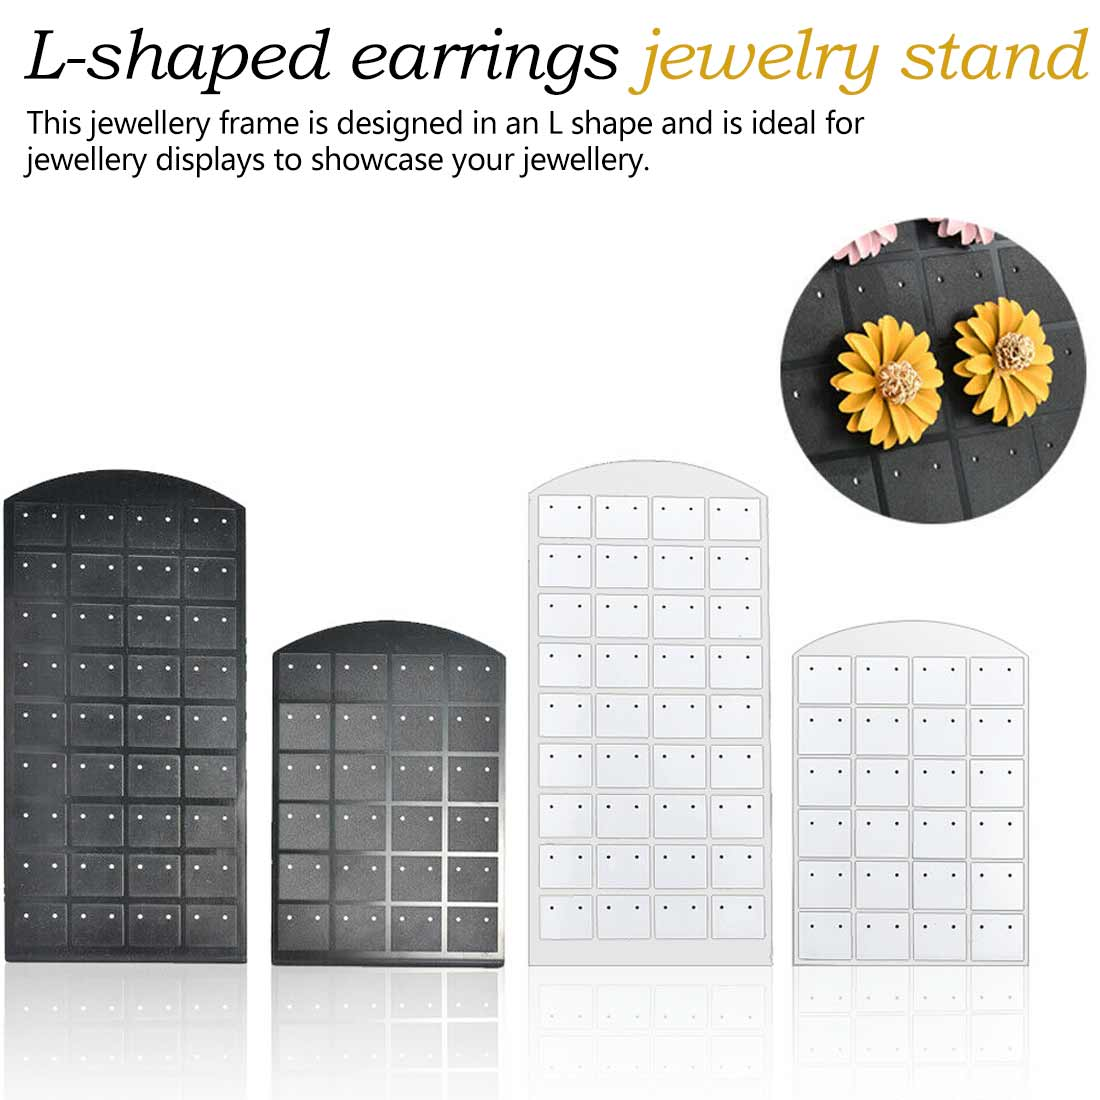 L-shaped Earrings Jewelry Frame 36 Pairs Of 24 Pairs Of 12 Pairs Of Jewelry Black And White Display Stand